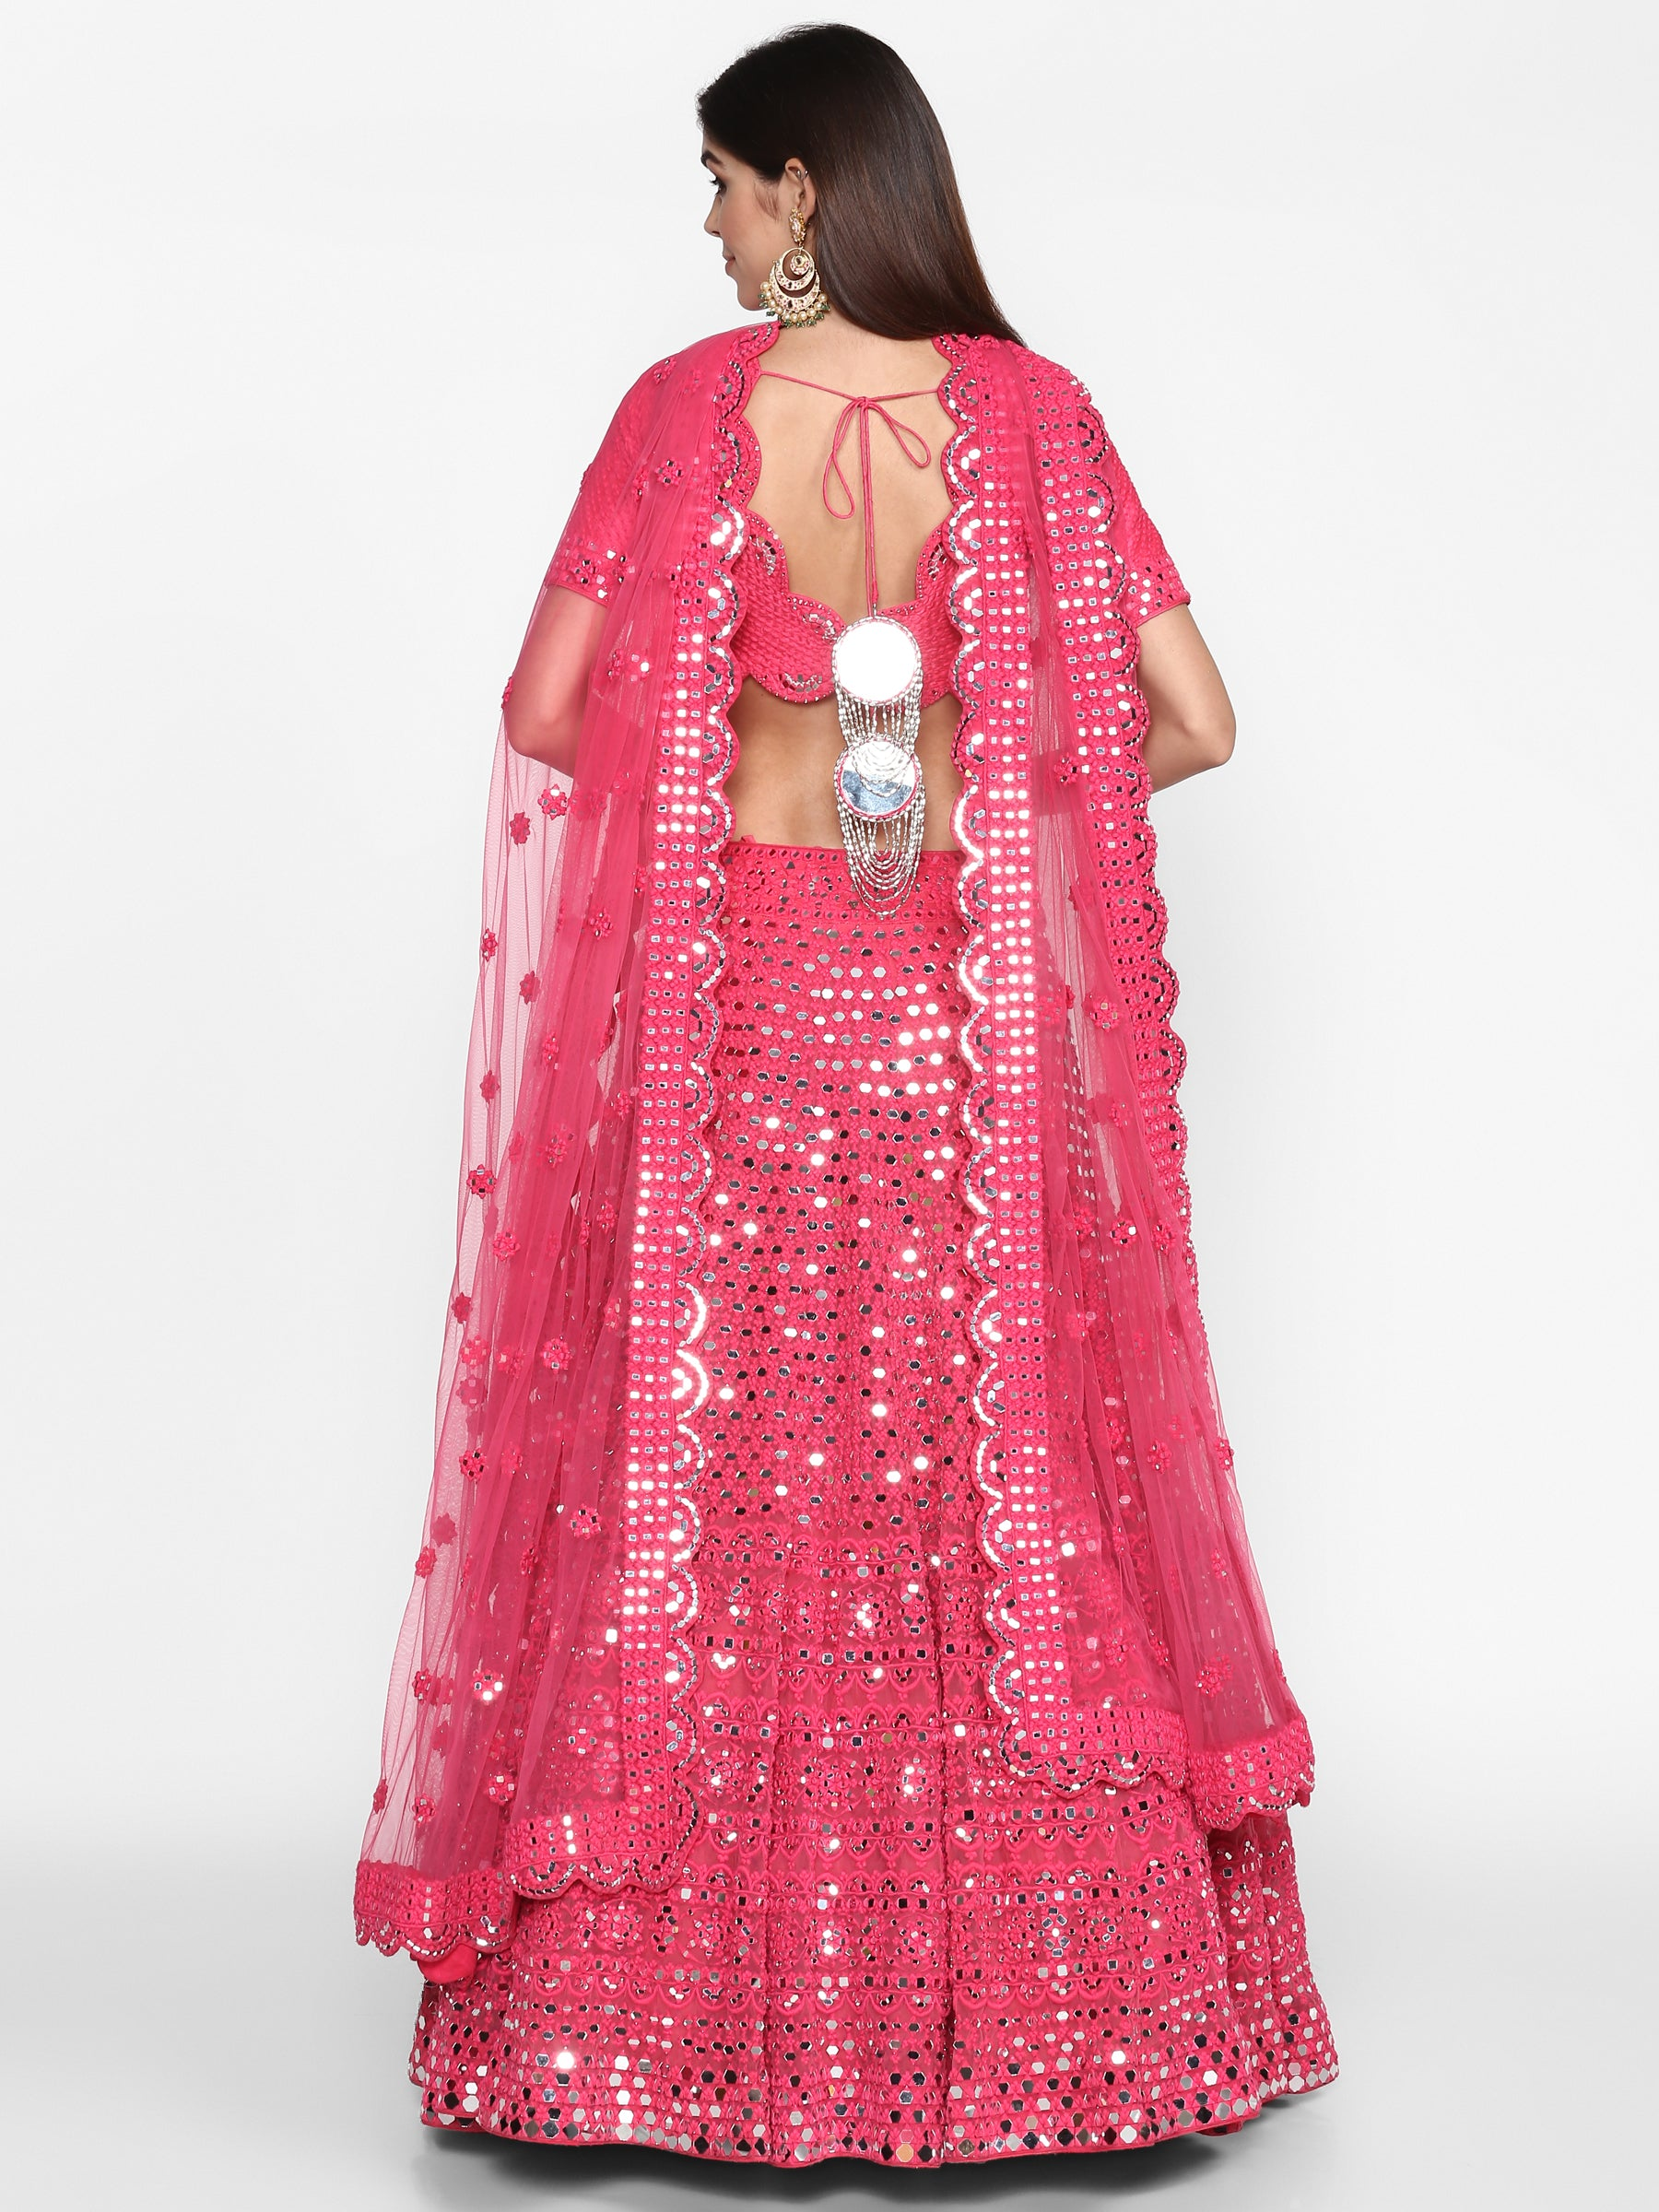 Abhinav Mishra Rani Pink  Lehenga Set - The Grand Trunk